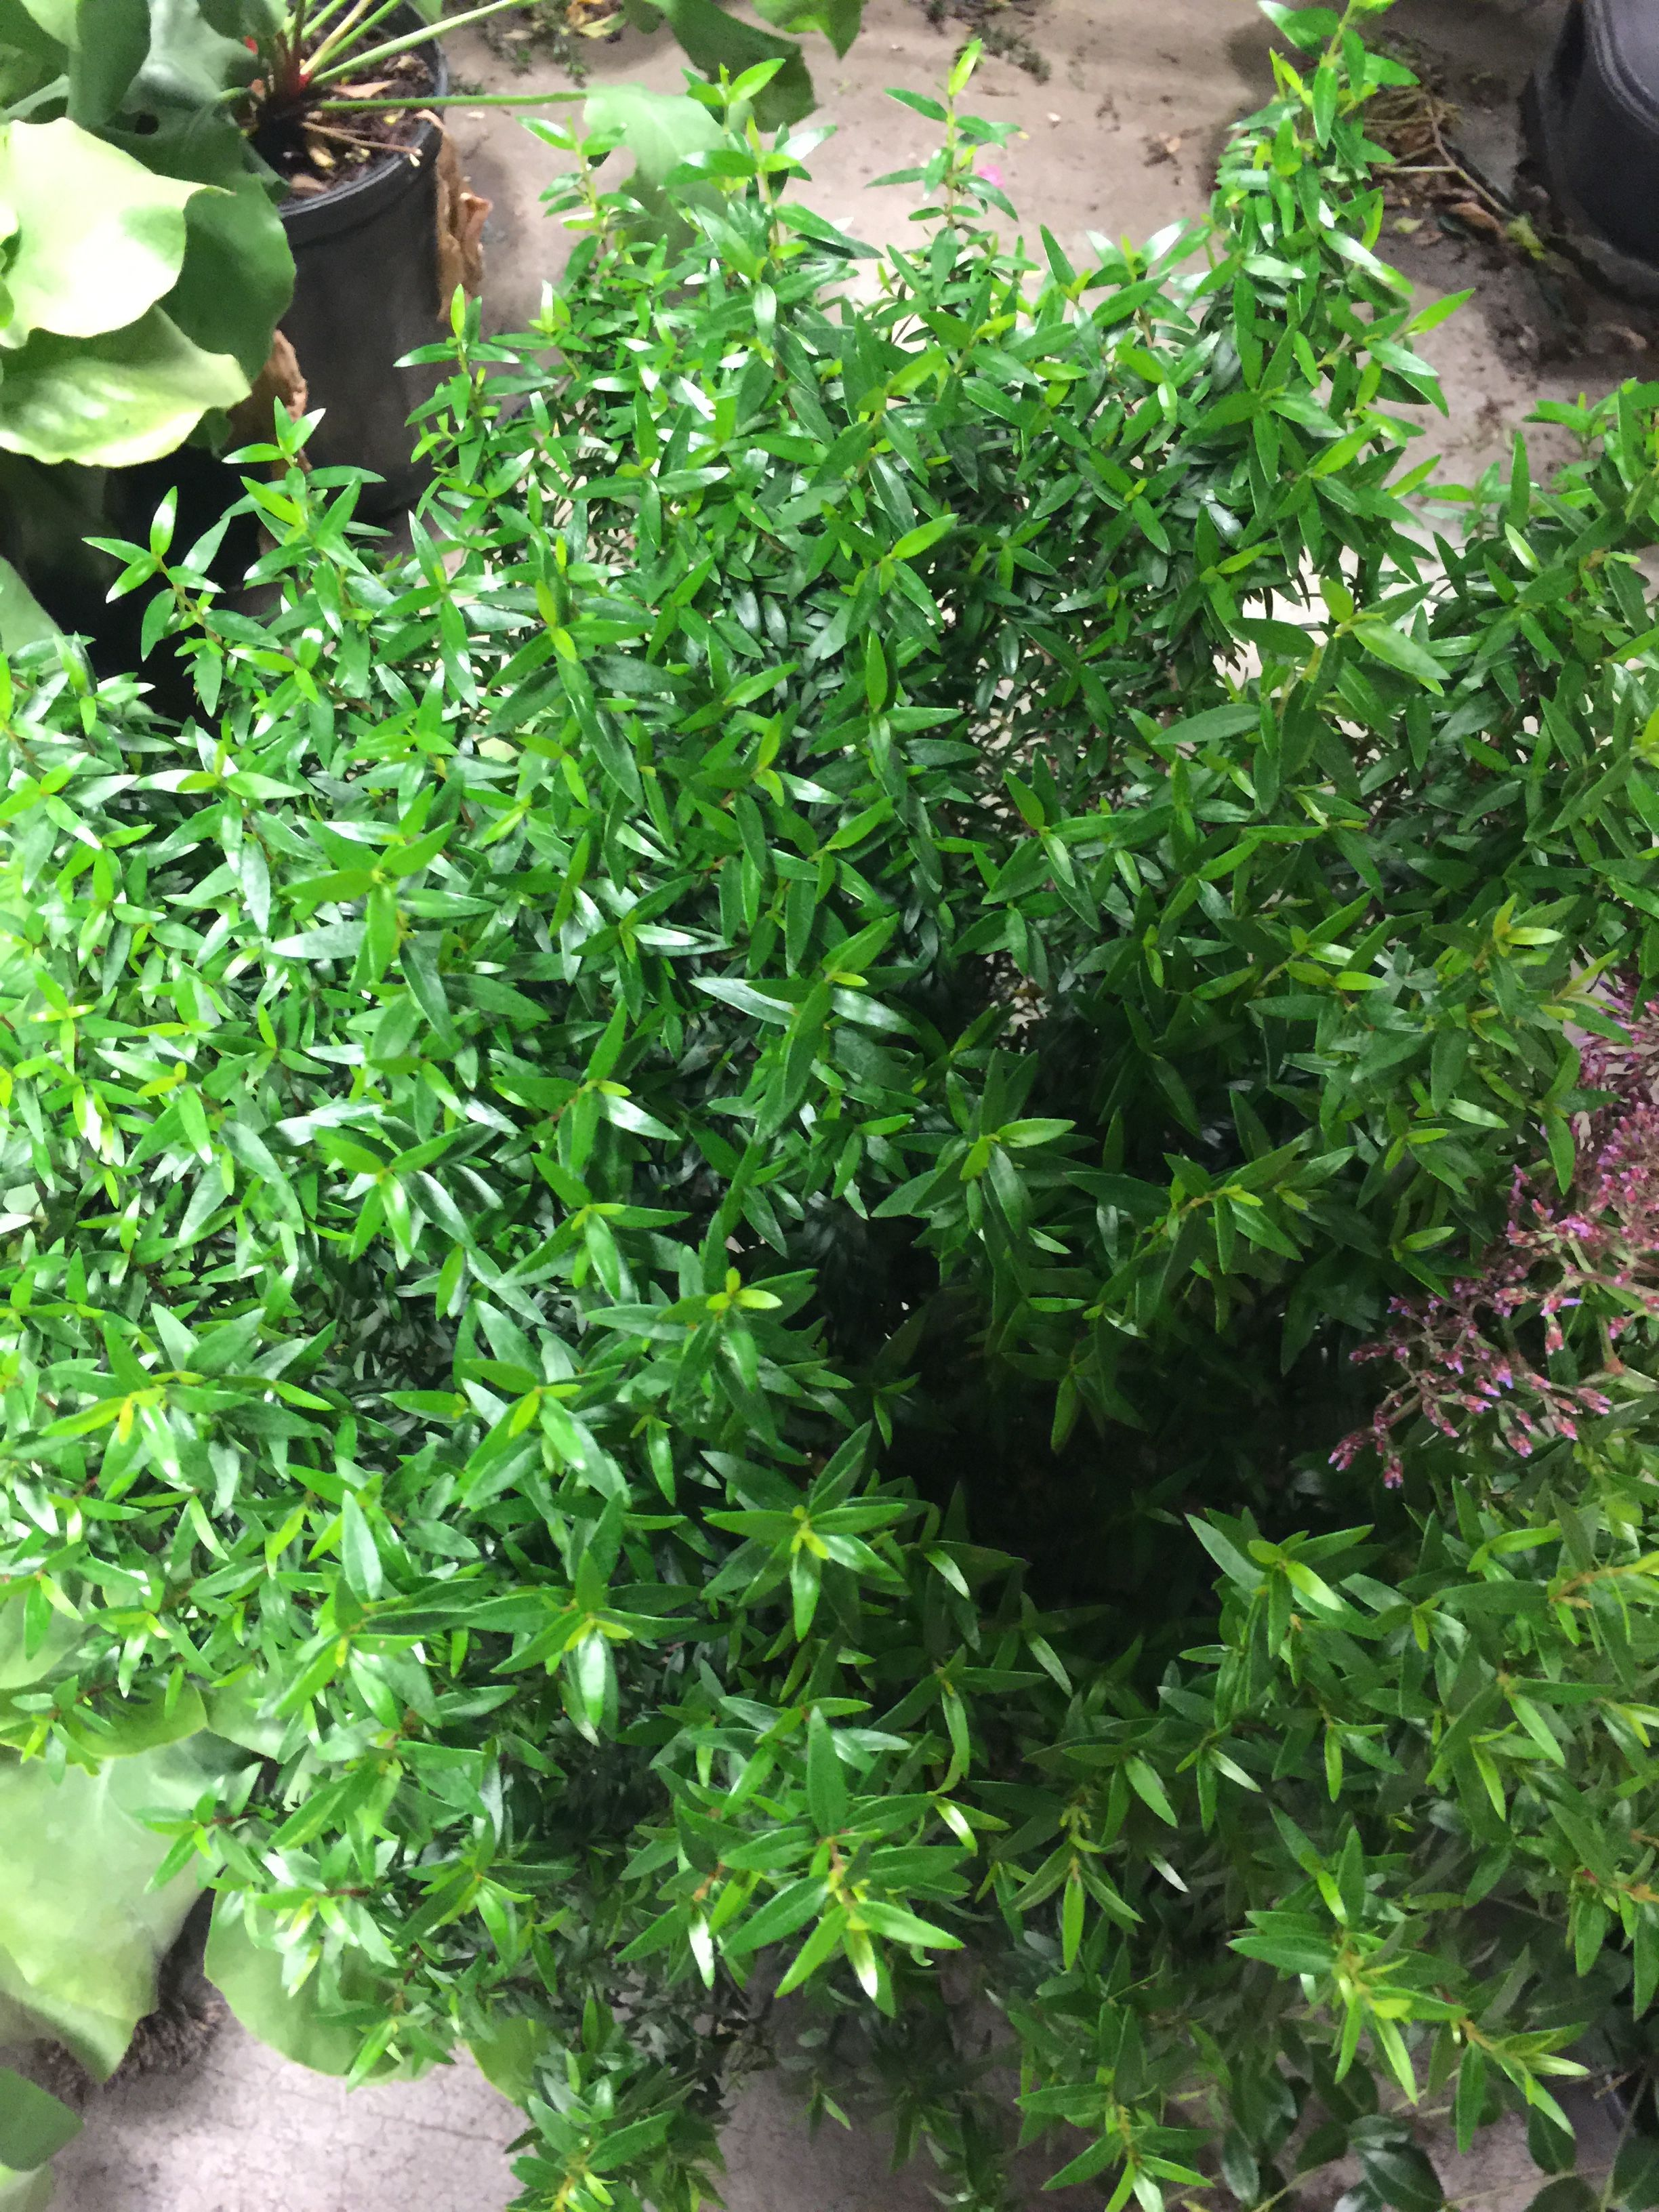 Buxus Semp Suffruticosa True Dwarf Boxw Compact Evergreen Hedge Slow Grower Photo From Hedgehome Depotdwarfcompactdwarfism